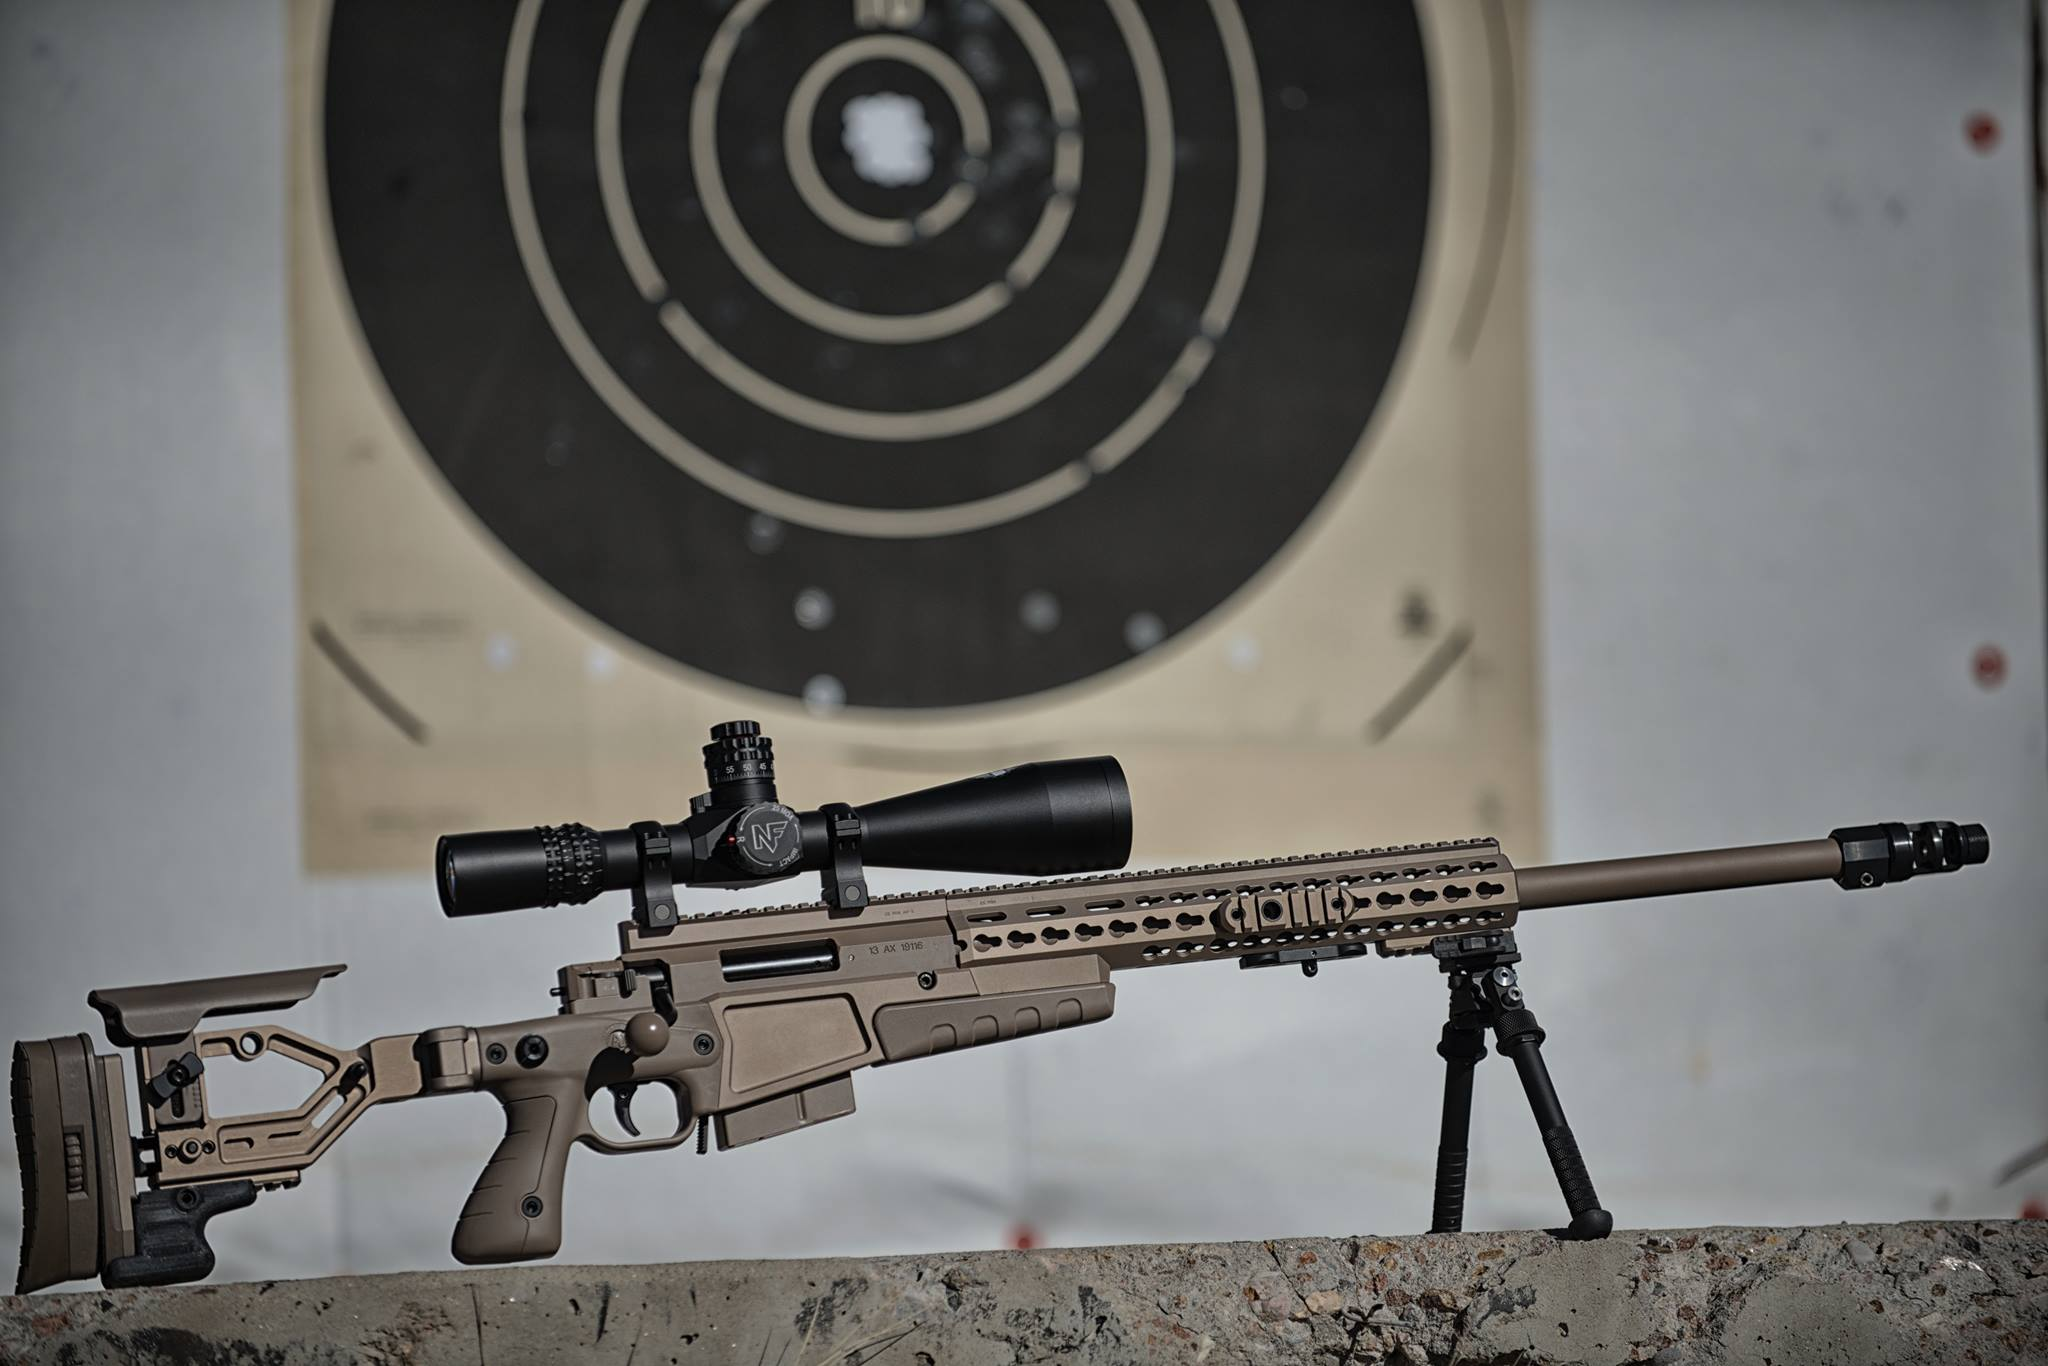 The Everyday Sniper Episode 151 Heading to Gunsite, Answering App Questions